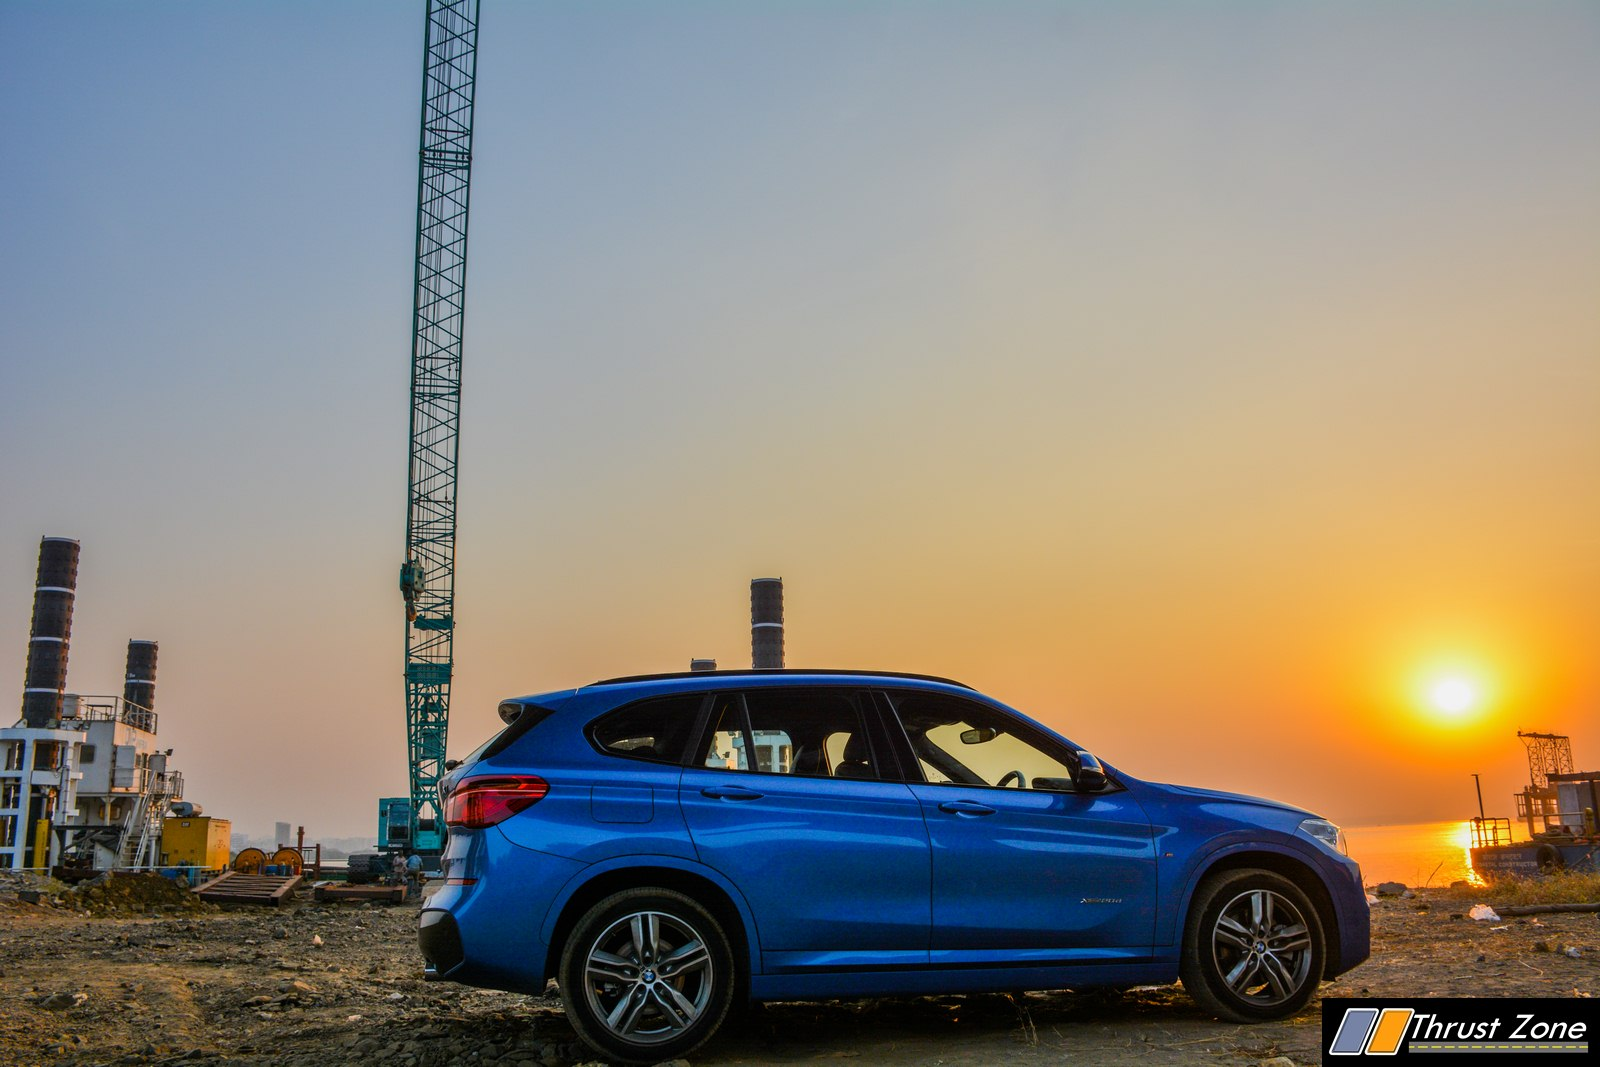 https://www.thrustzone.com/wp-content/uploads/2019/07/2018-BMW-x1-diesel-India-Review-6.jpg